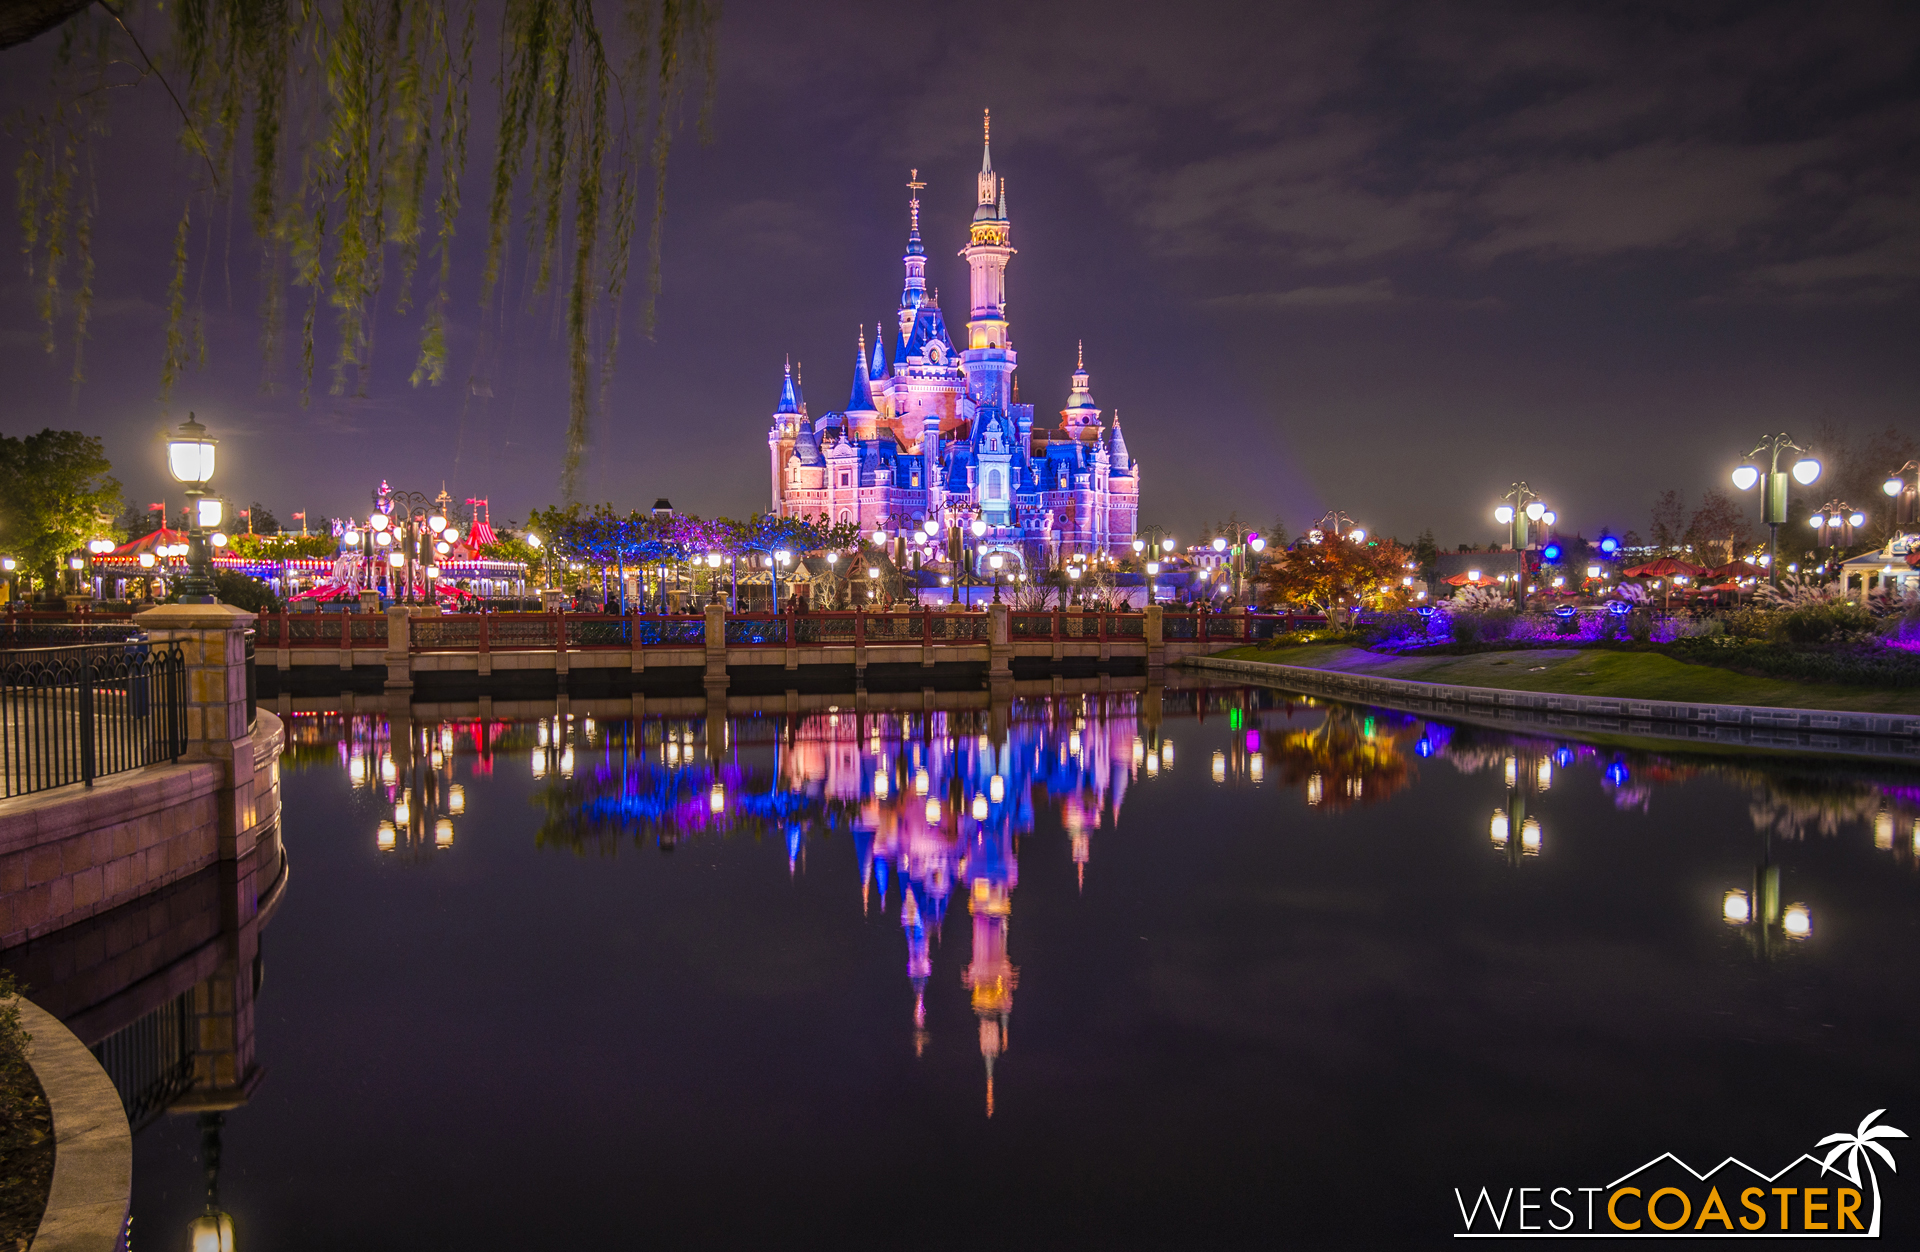 The Enchanted Storybook Castle reflects off one of many ponds throughout the Gardens.